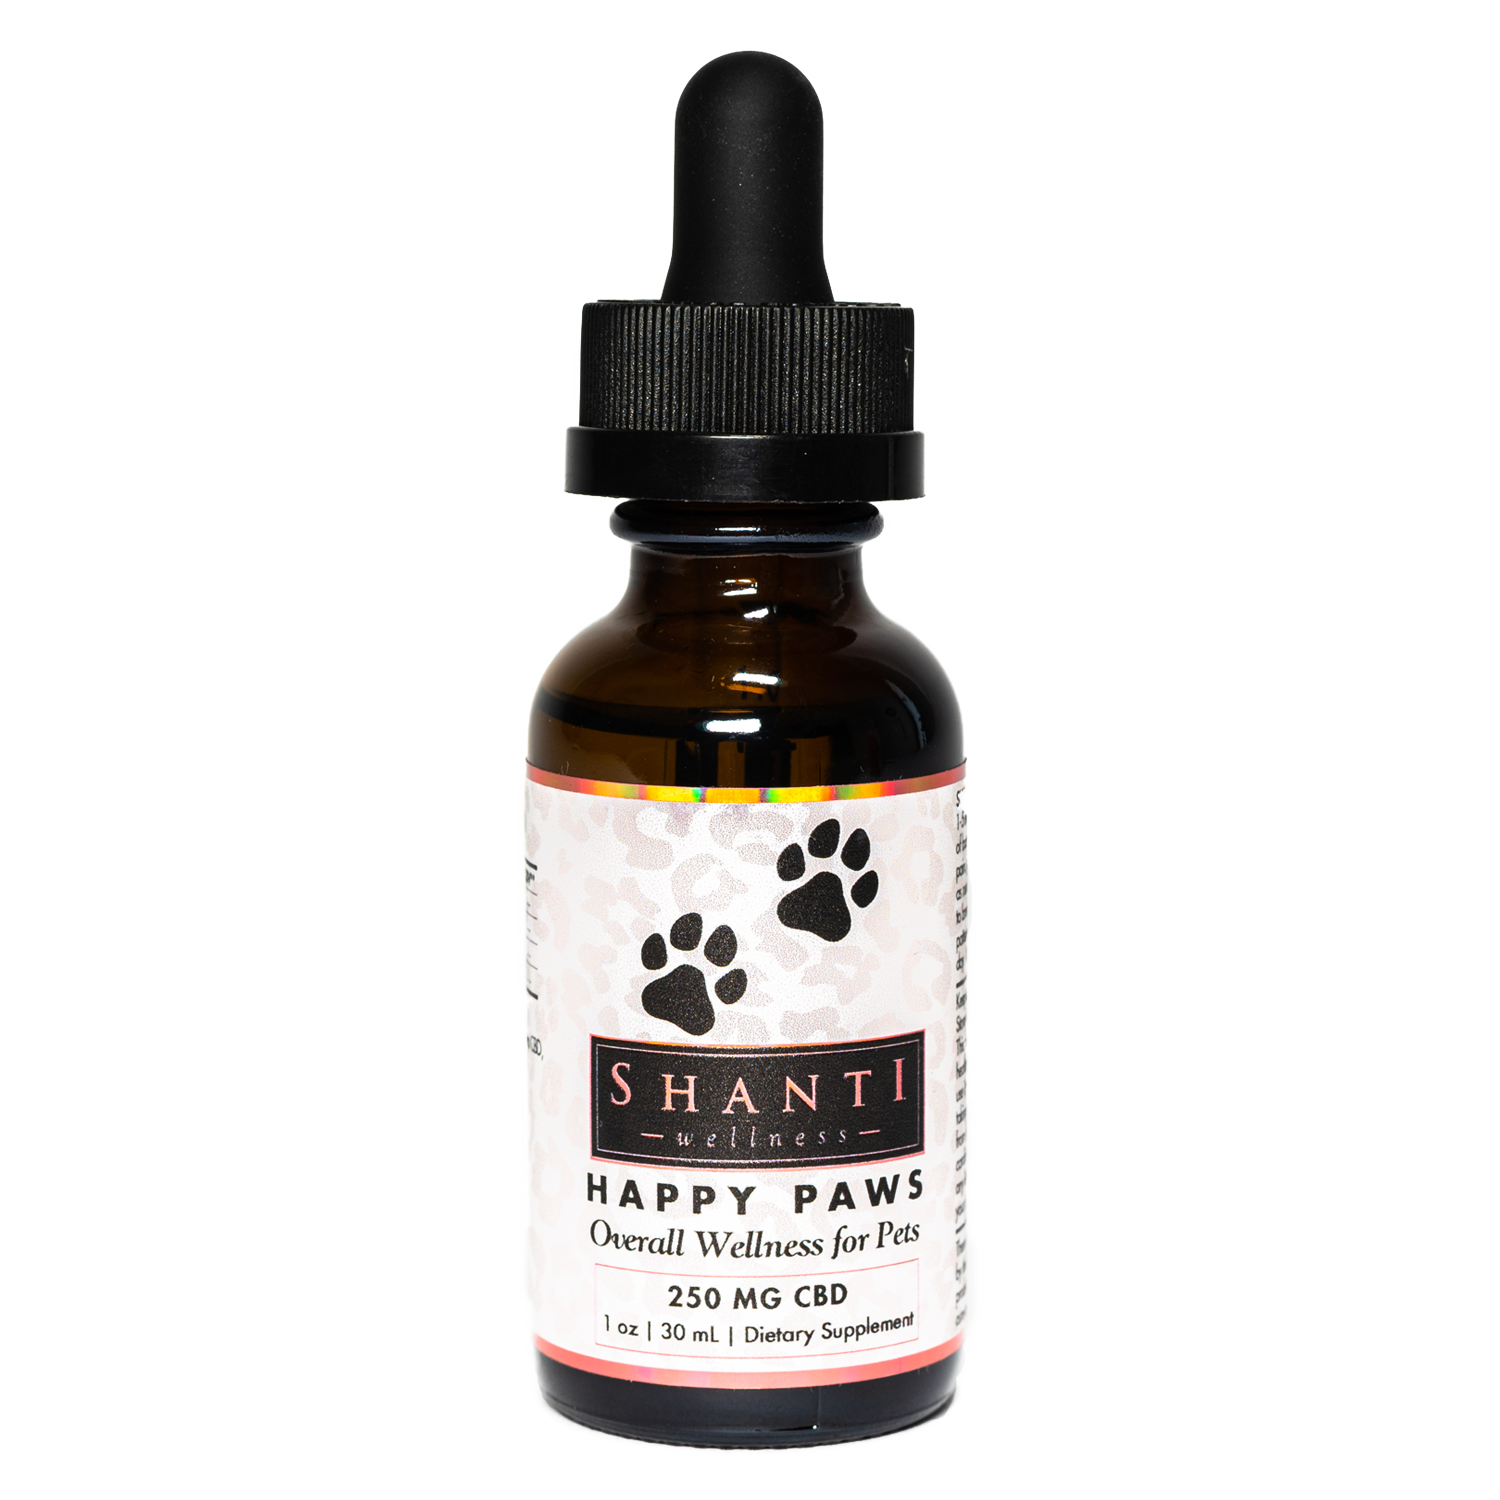 Happy Paws -250 mg CBD Oil for Pets- Unflavored - Shanti Wellness